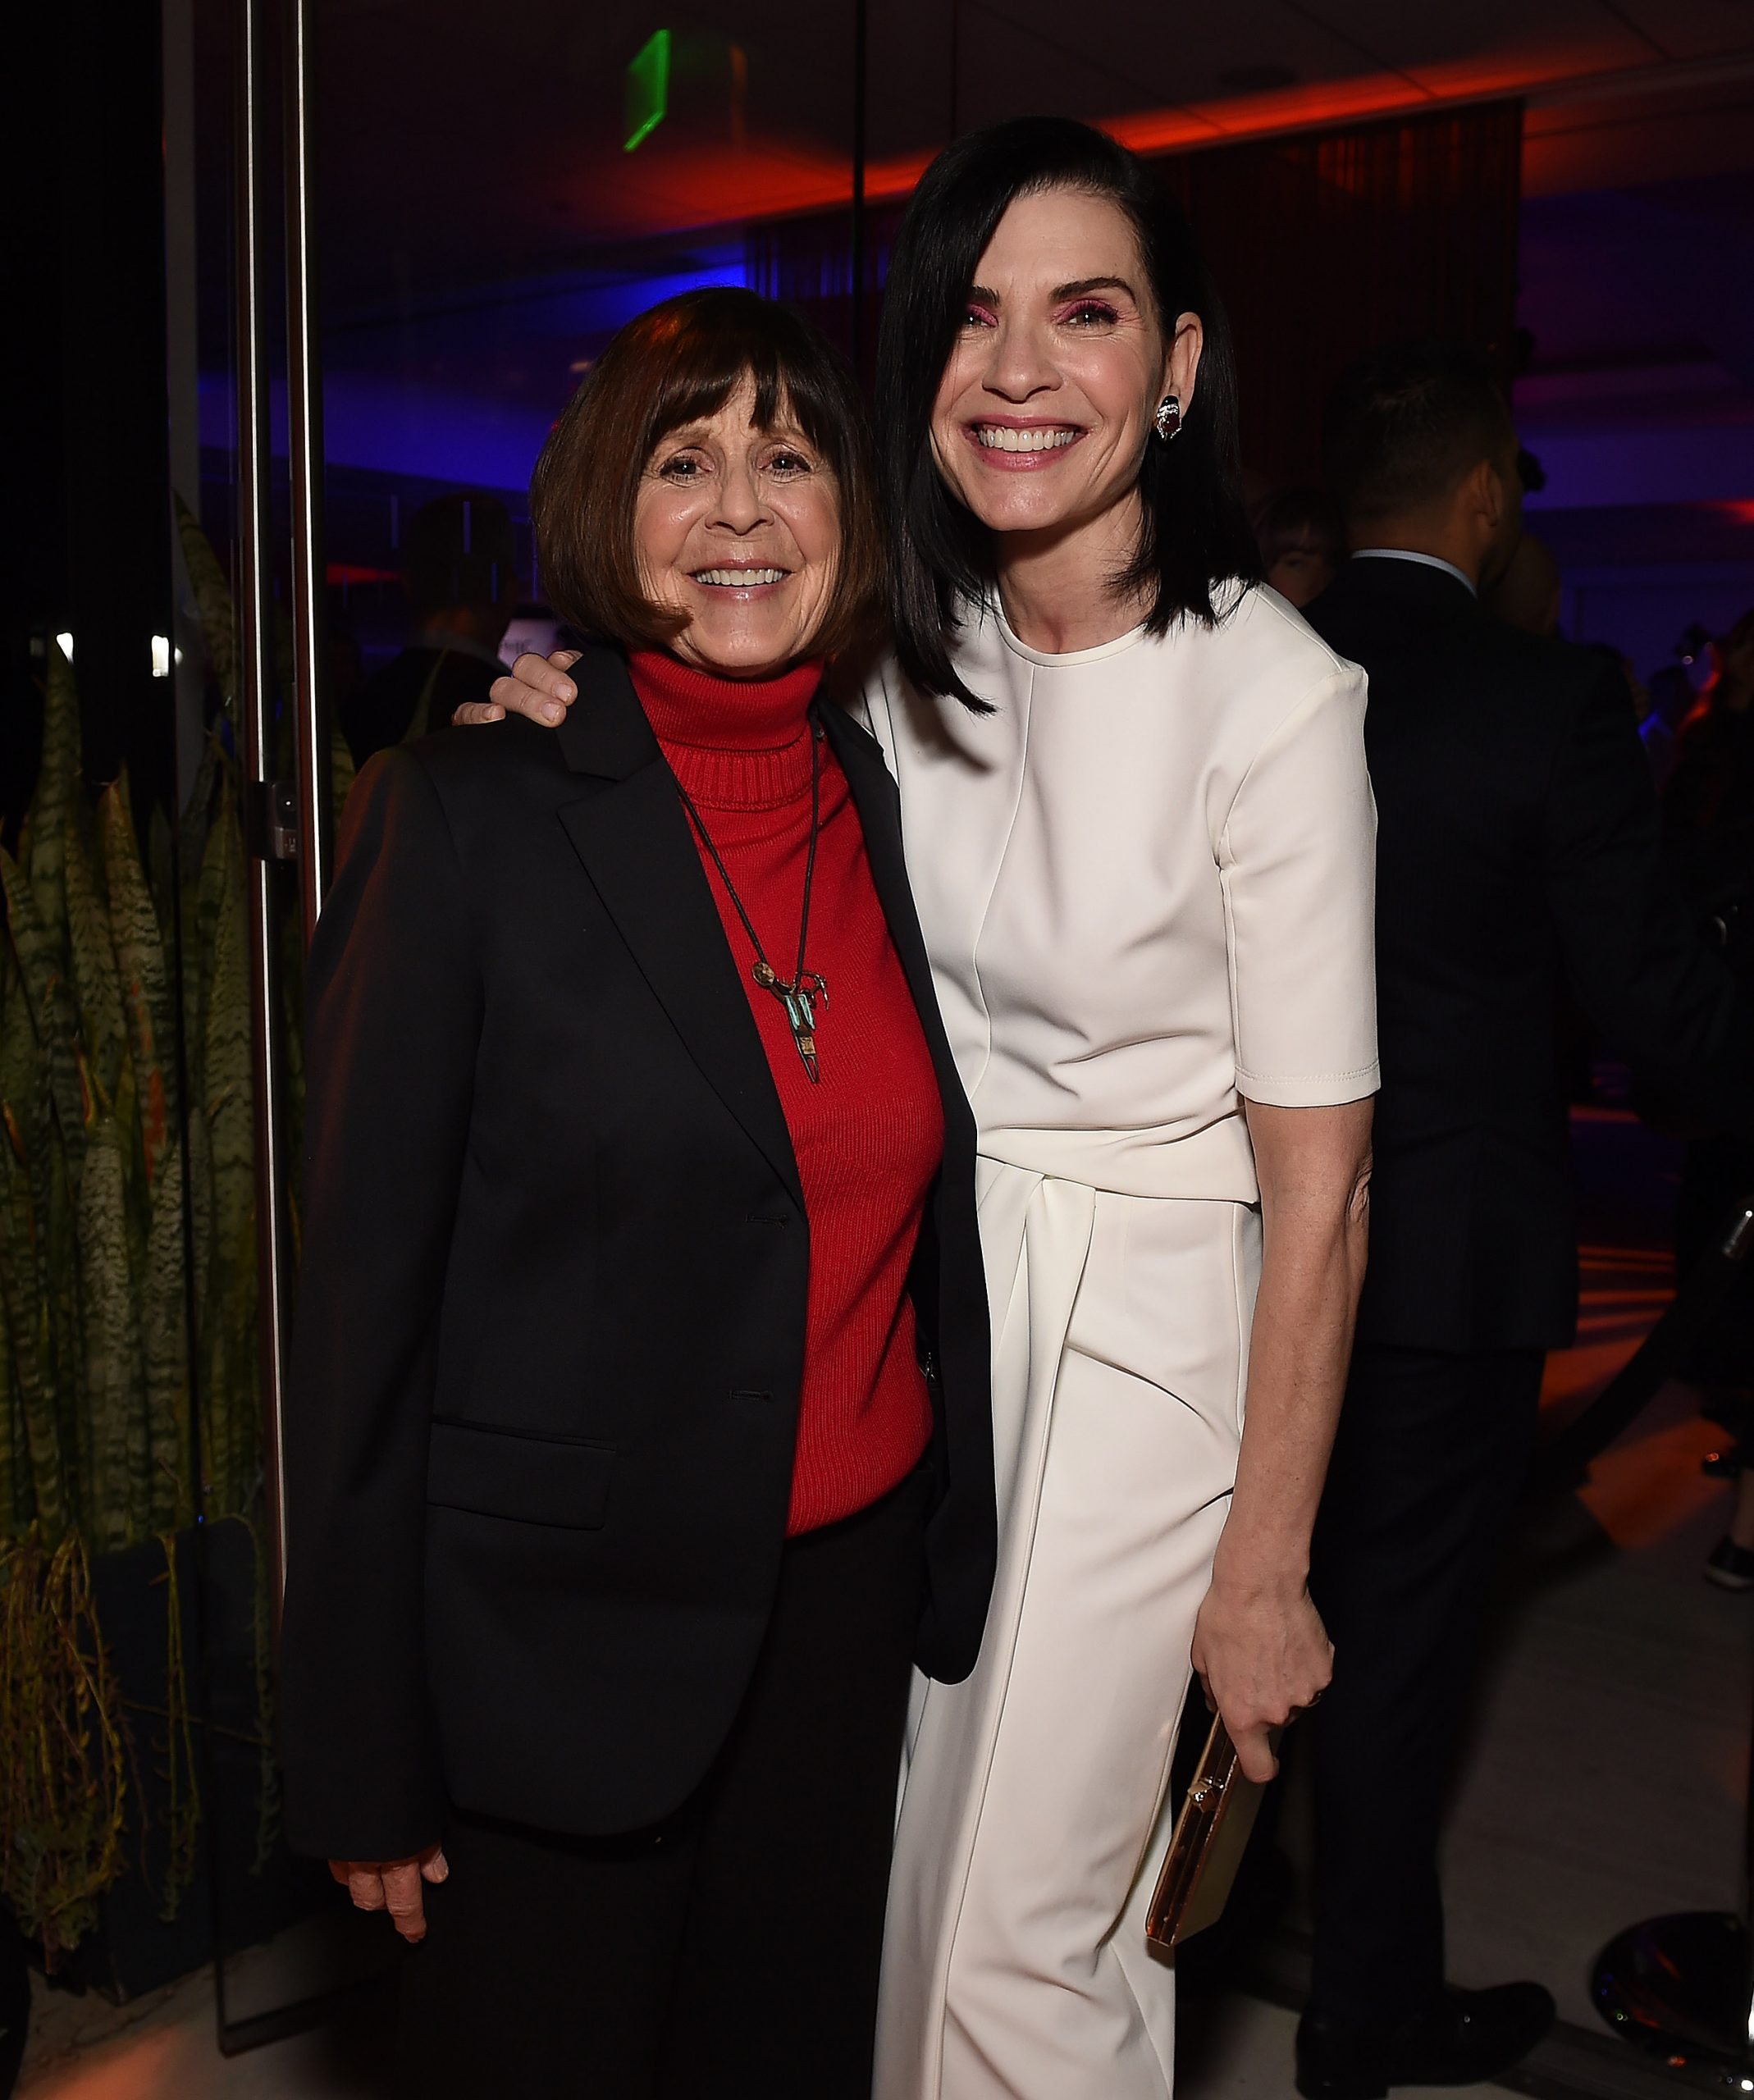 photo of Lt. Col. Nancy Jaax and Julianna Margulies